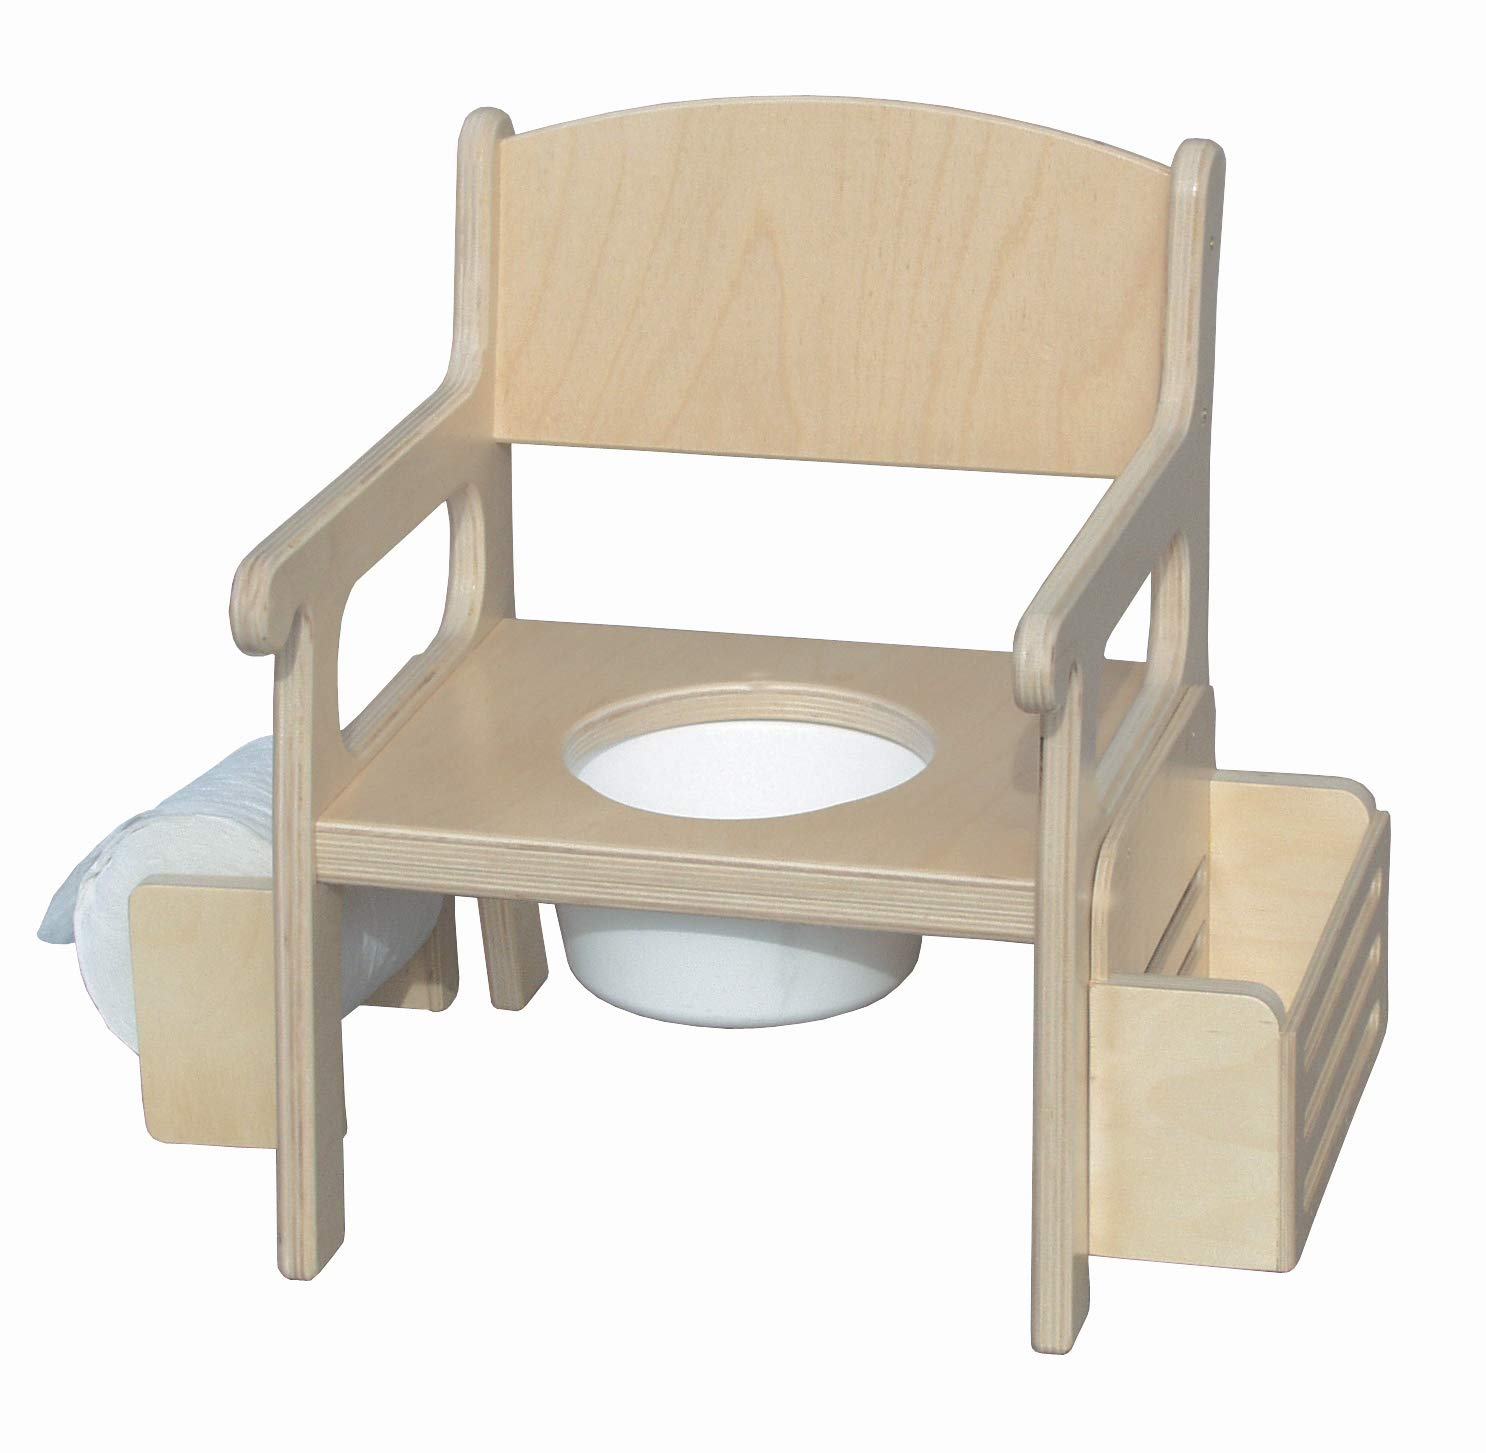 Little Colorado 02728NA Potty Chair with Accessories-Natural